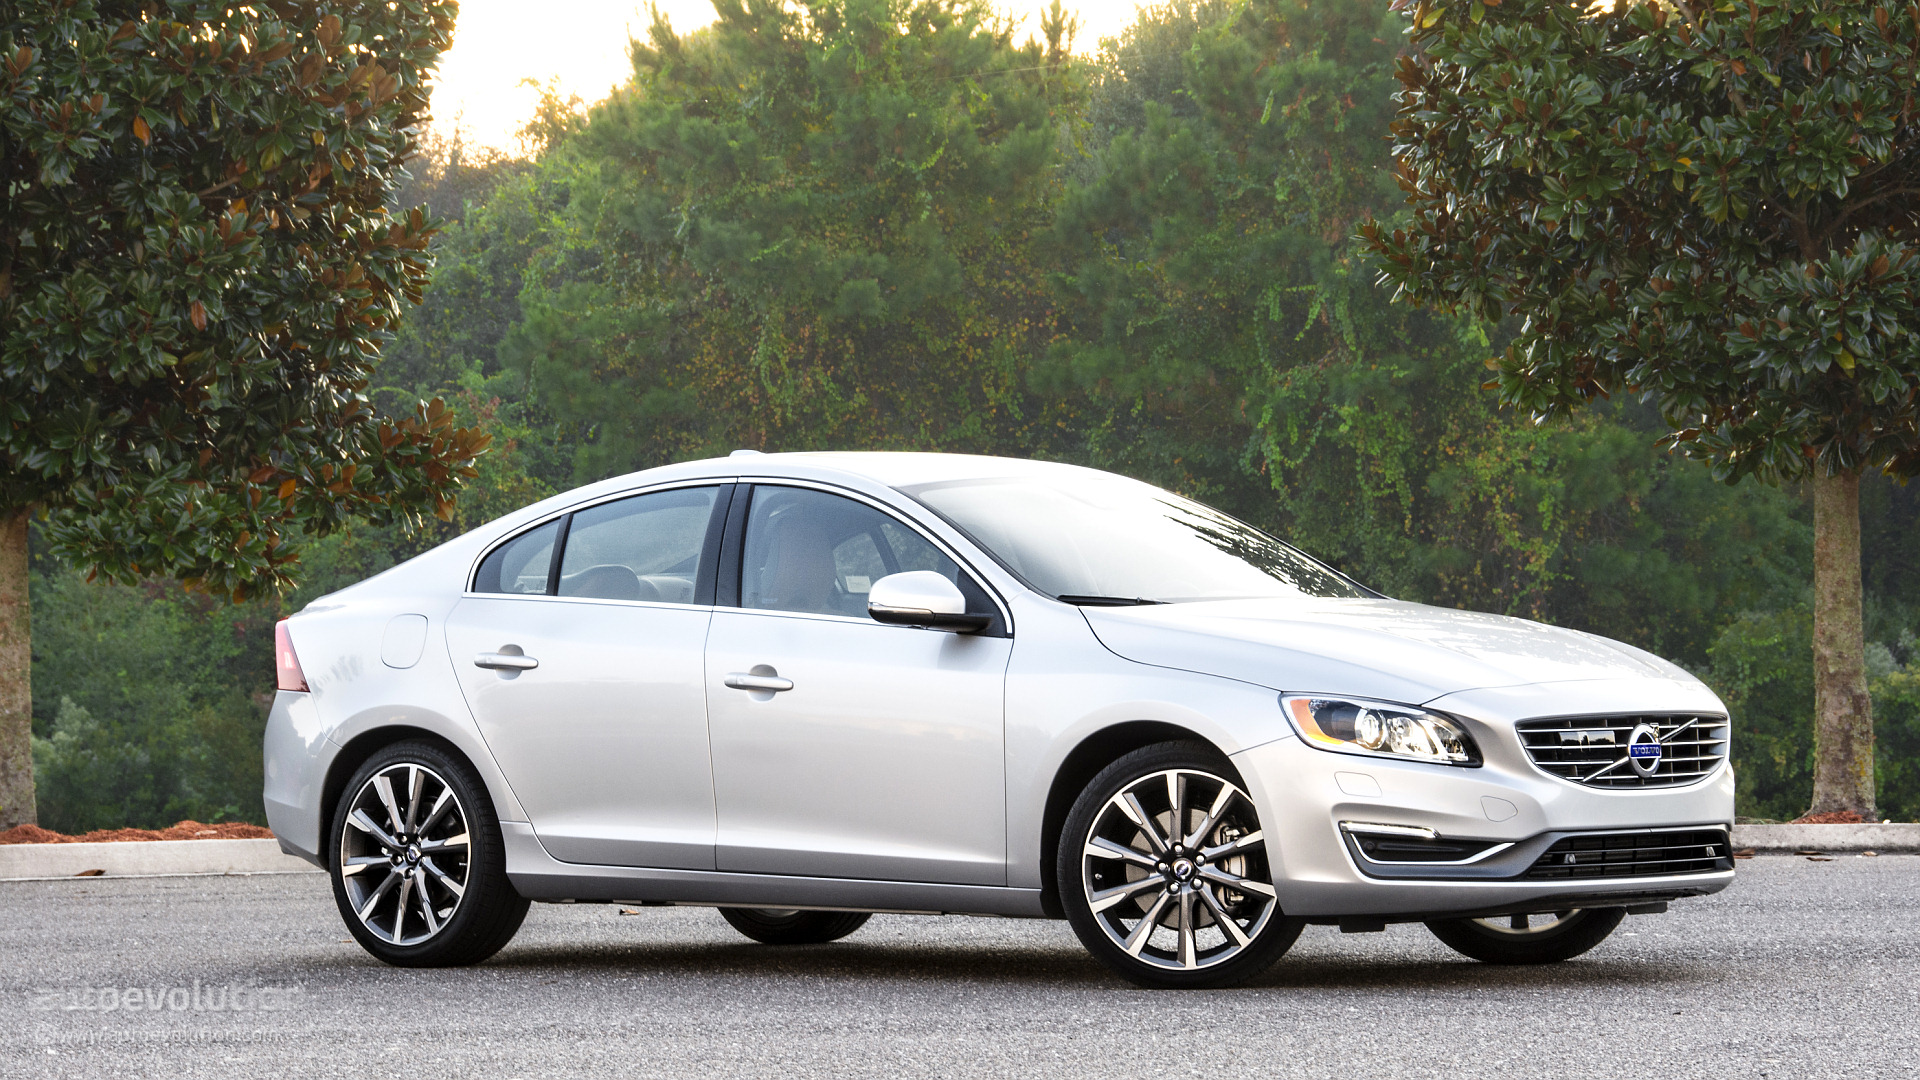 2015 Volvo S60 T6 Drive-E Wallpapers